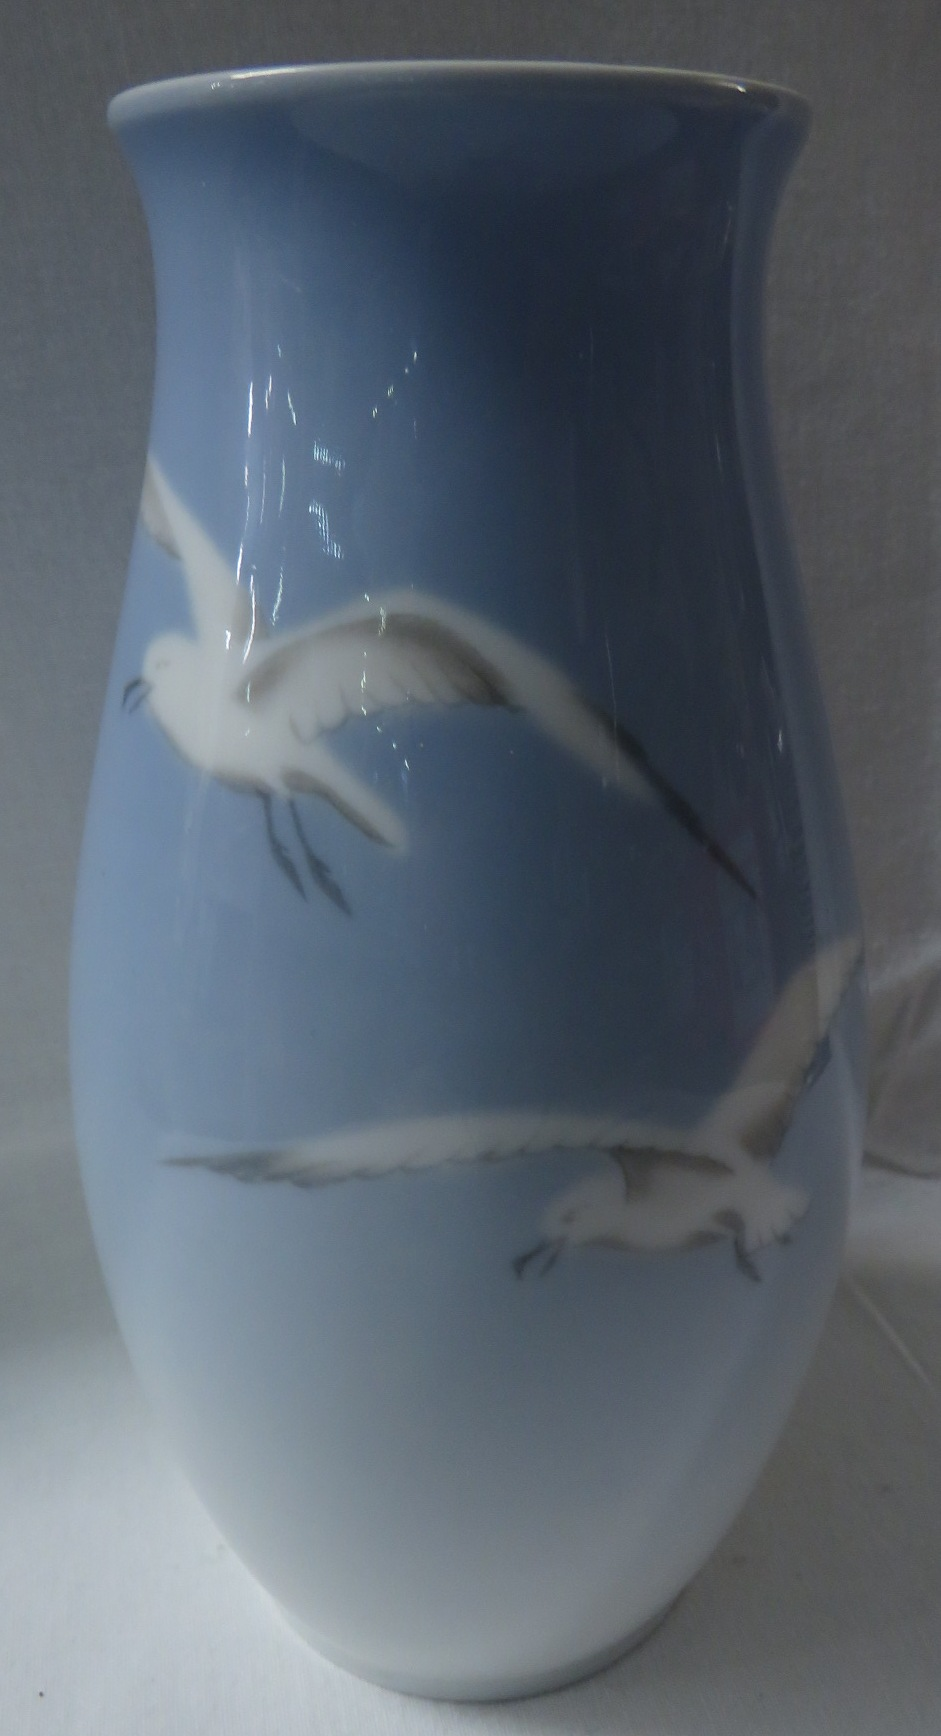 Lot 31 - A Bing and Grondahl ovoid vase thought by the vendor to possibly be a prototype, graduated pale blue